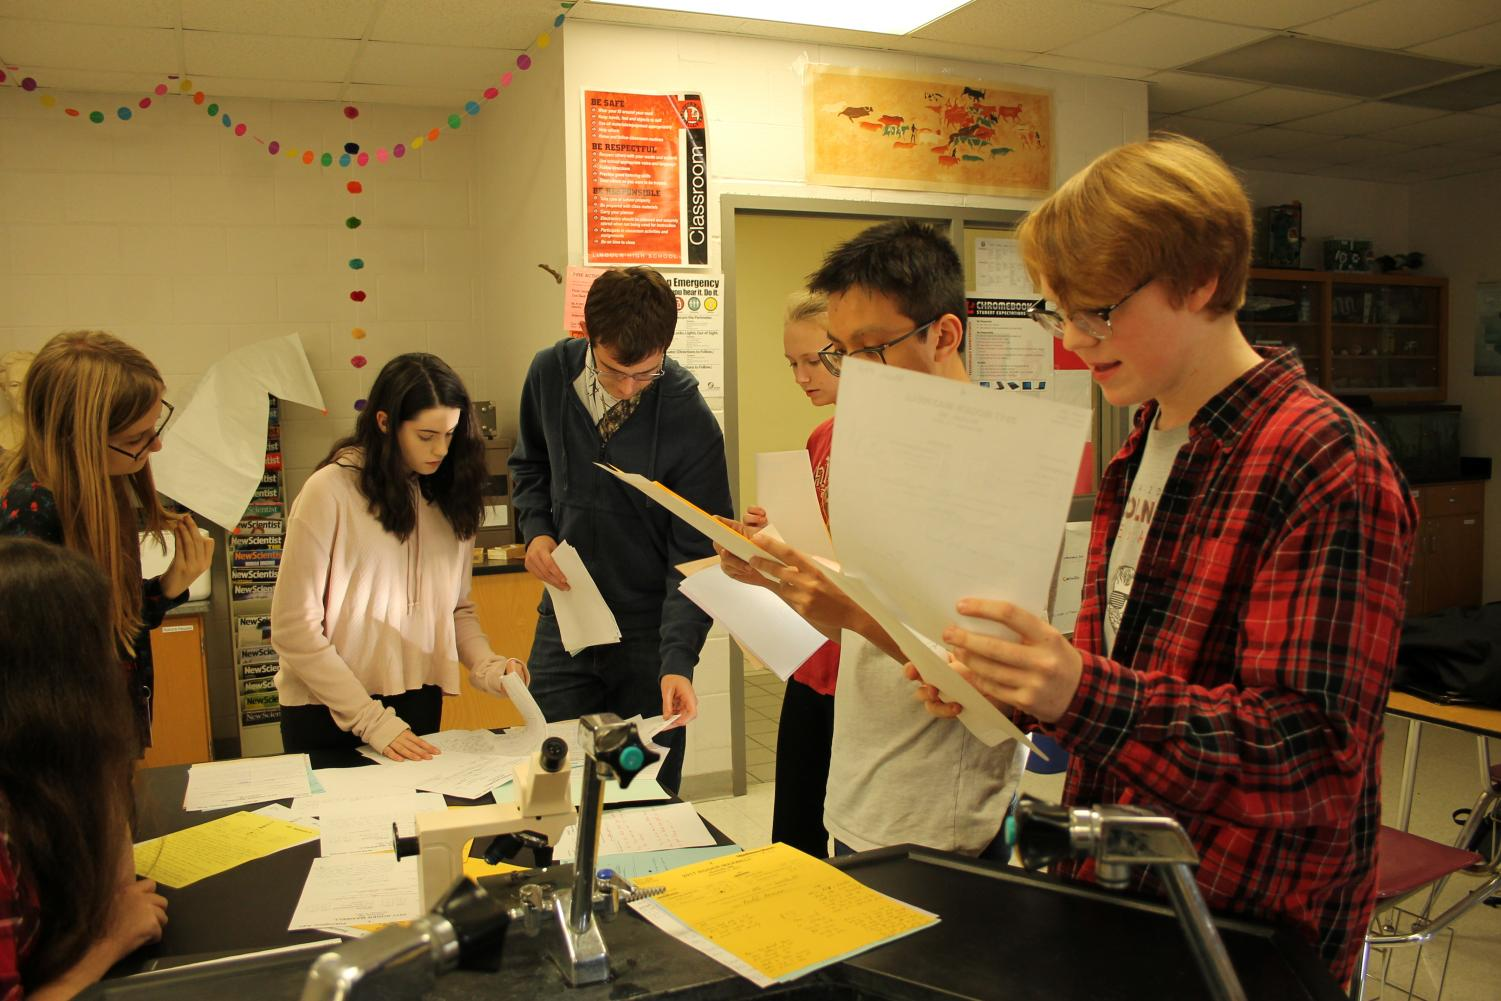 The LHS Debate team reviews and shares updated scores from the previous competition at Southwest High School and prepares for upcoming competition in Elkhorn, NE on Saturday November 18, 2017. From left to right: Esmee Krohn (10), Madeleine Walker (10), Janna Marley (9), Keith Tran (12), Rory Helweg (12). Photo by Audrey Perry